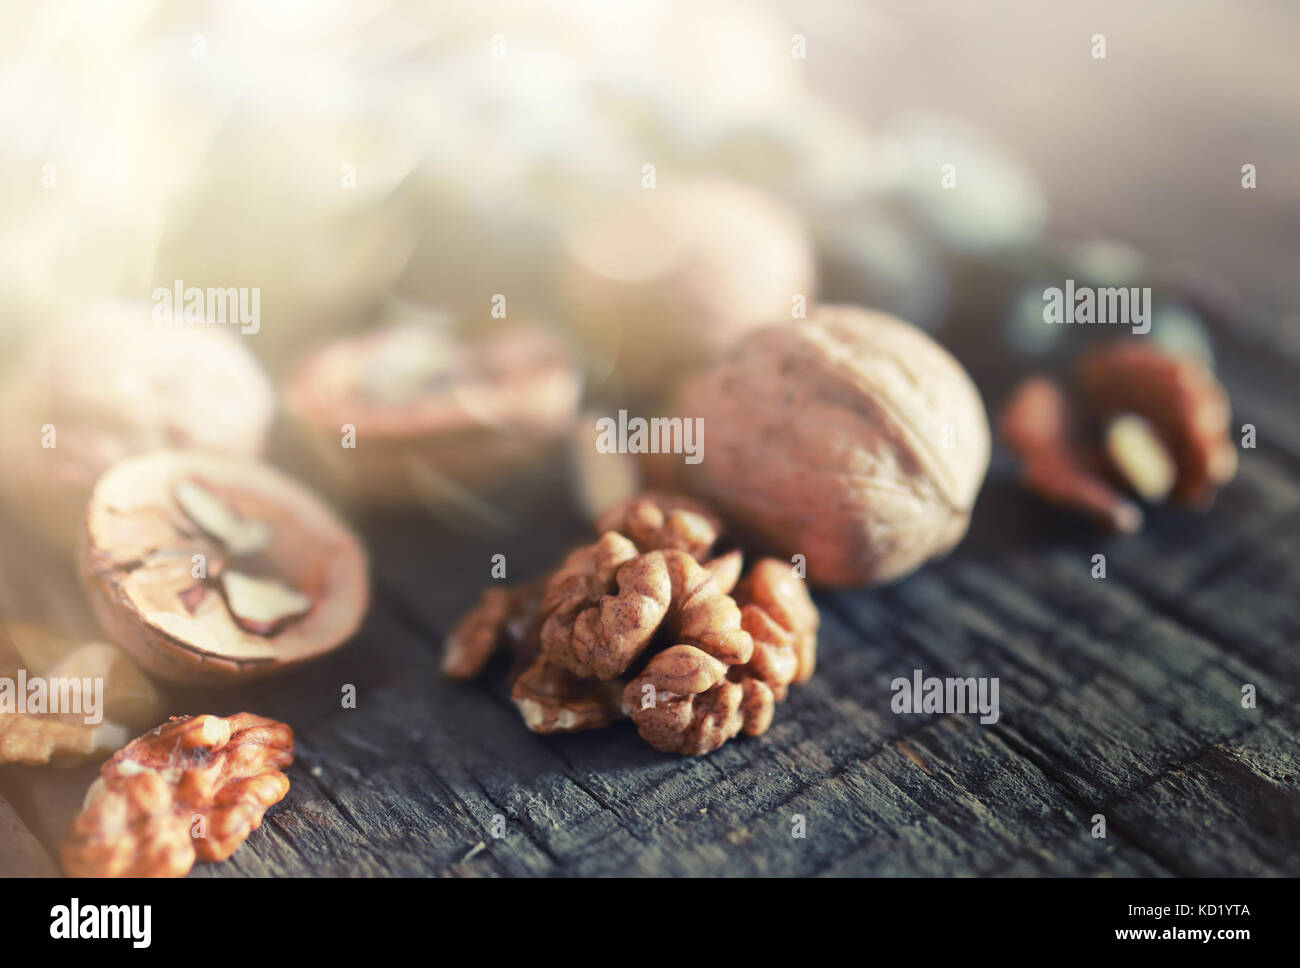 walnuts, whole and peeled wooden background - Stock Image